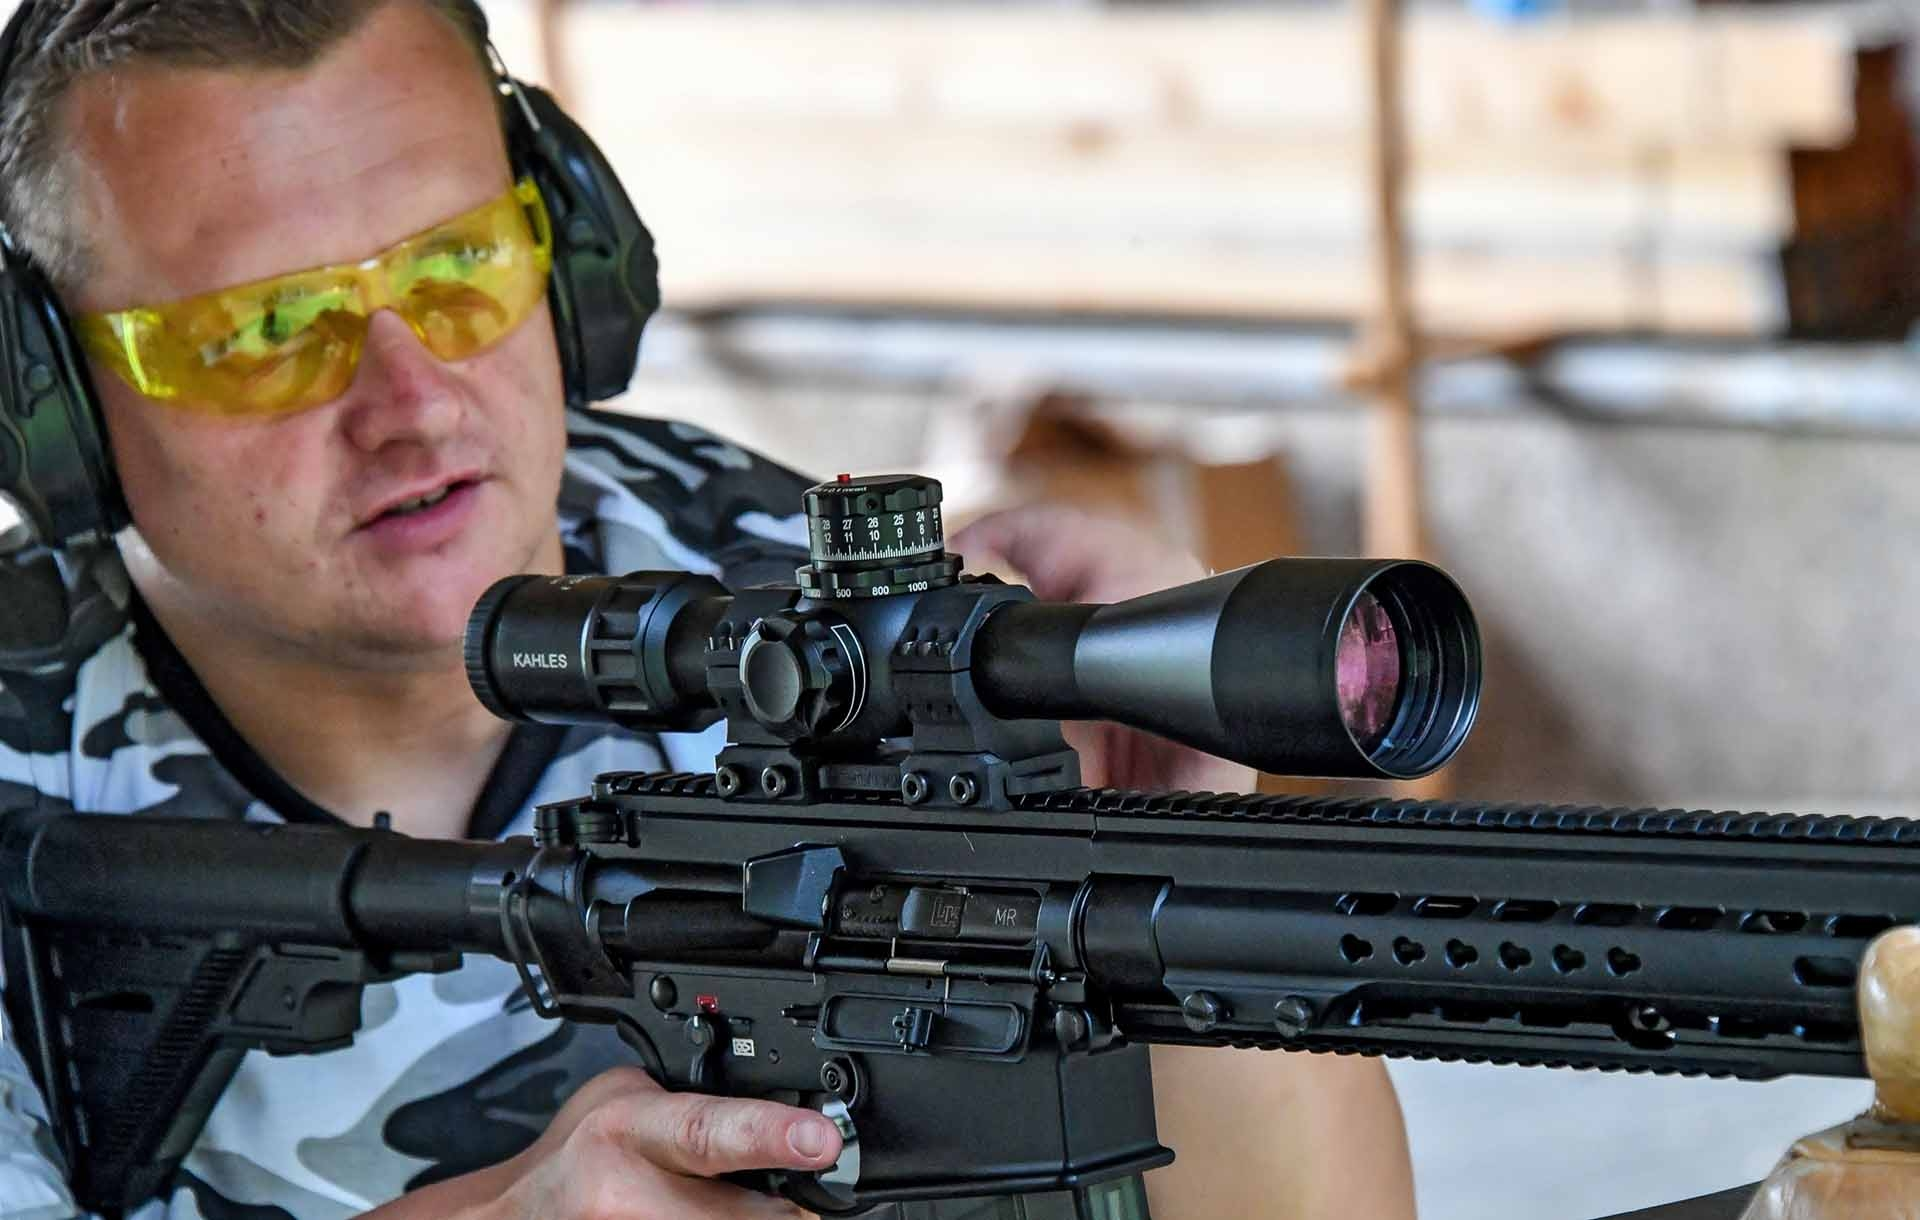 kahles: Kahles K525i tactical riflescope test